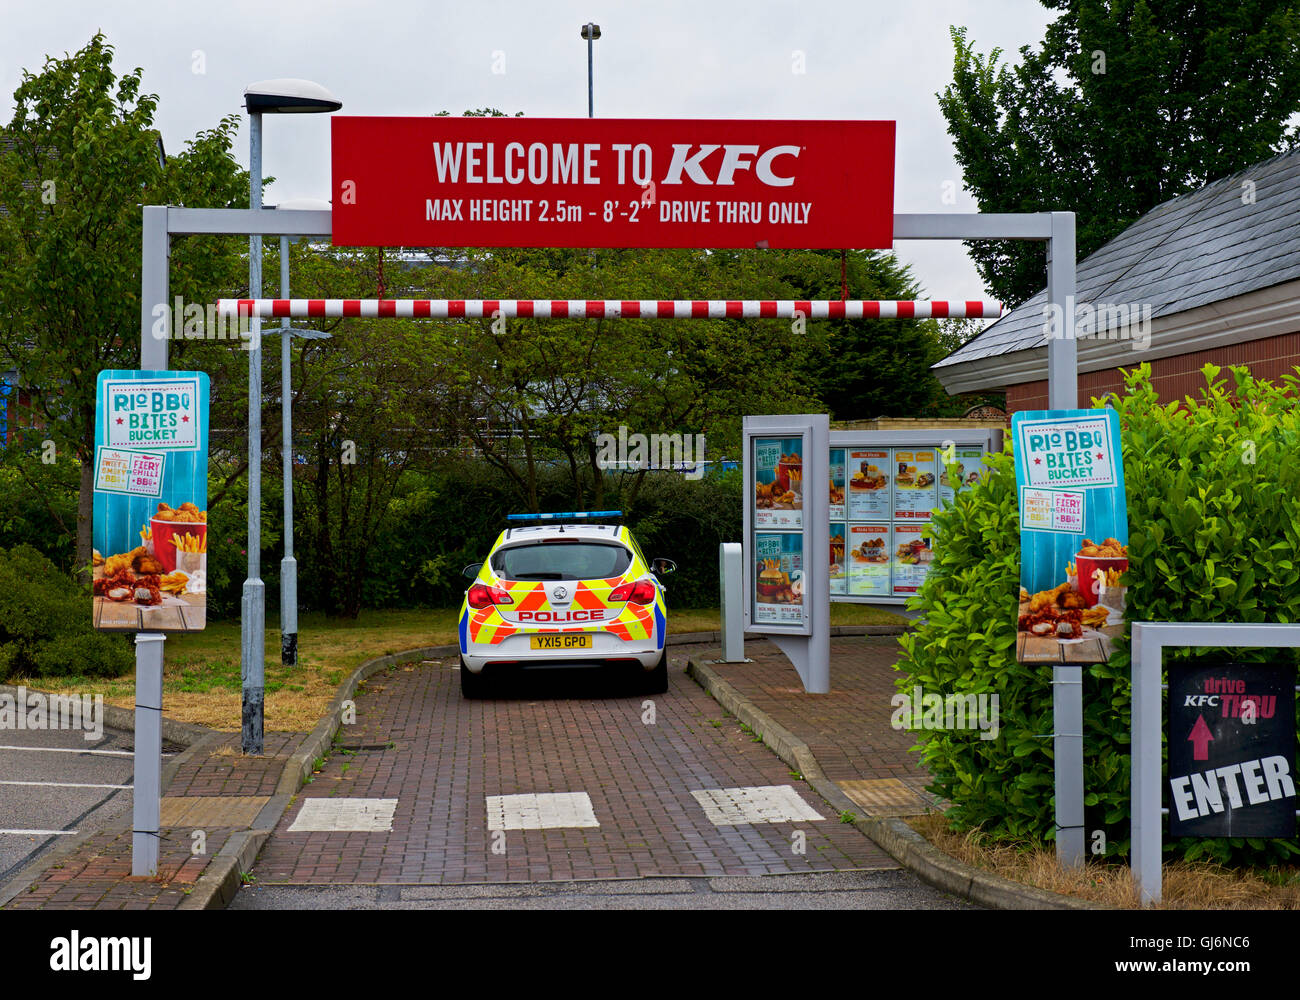 Police car at drive-in KFC take-away restaurant, England UK - Stock Image